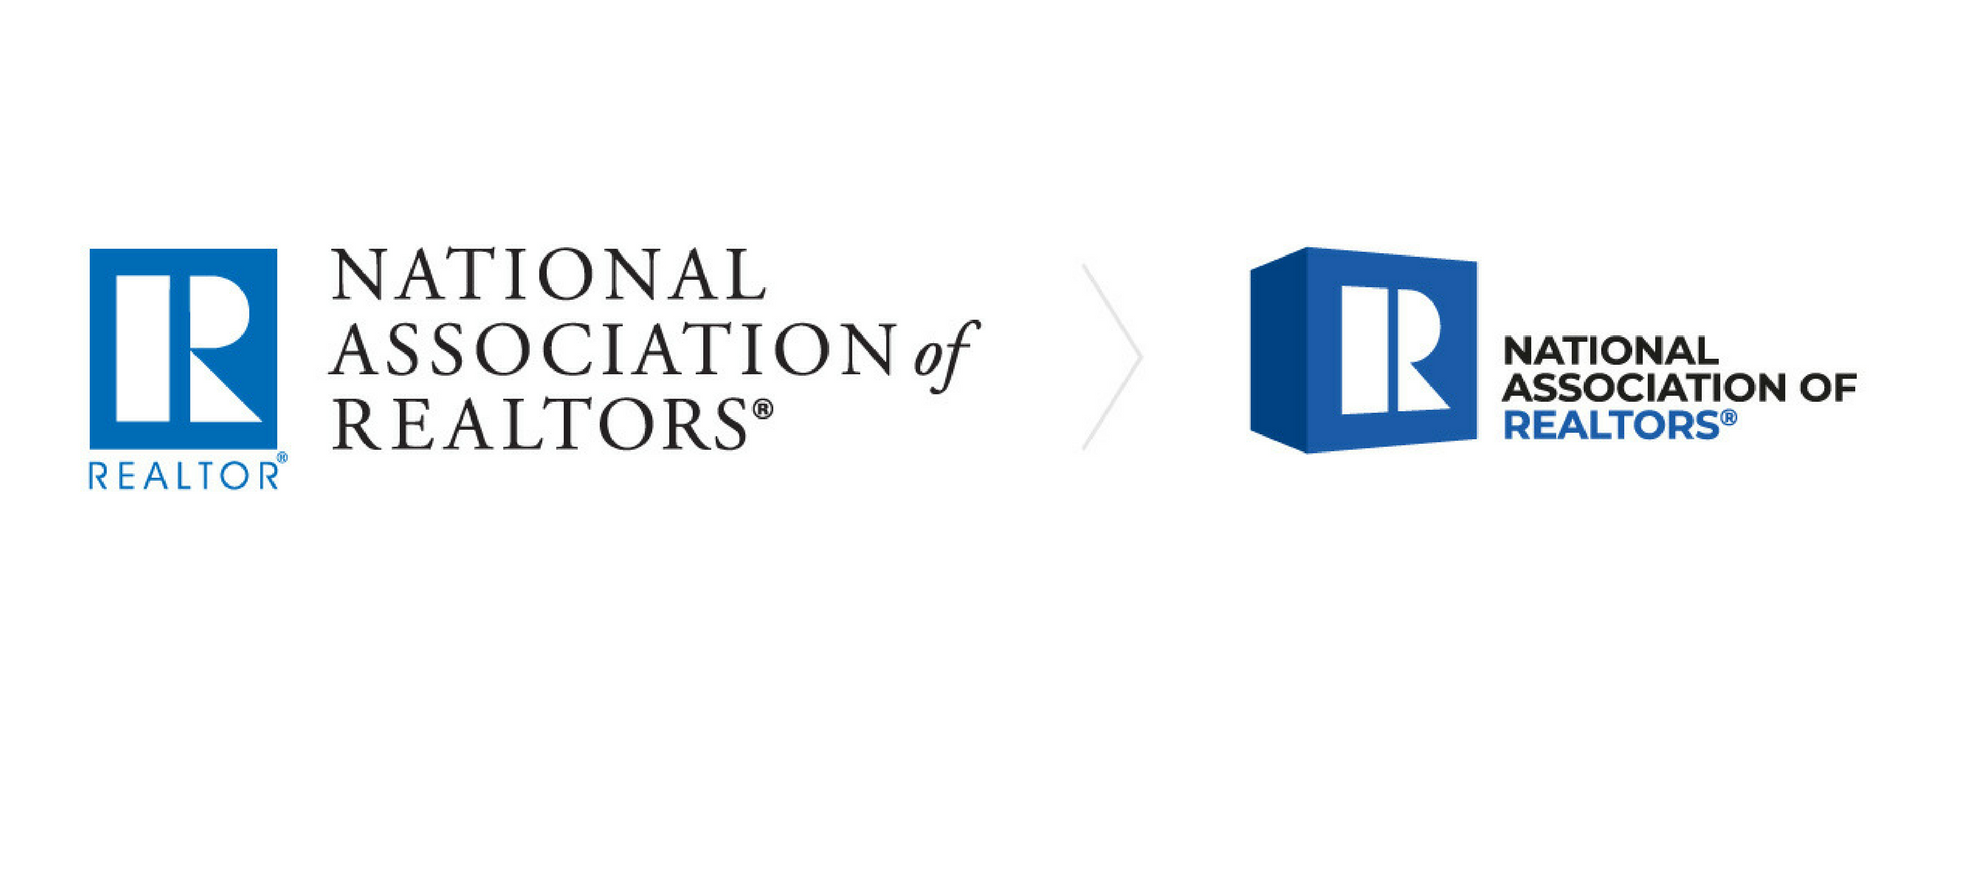 Realtors React To NAR\'s New Three-Dimensional Logo